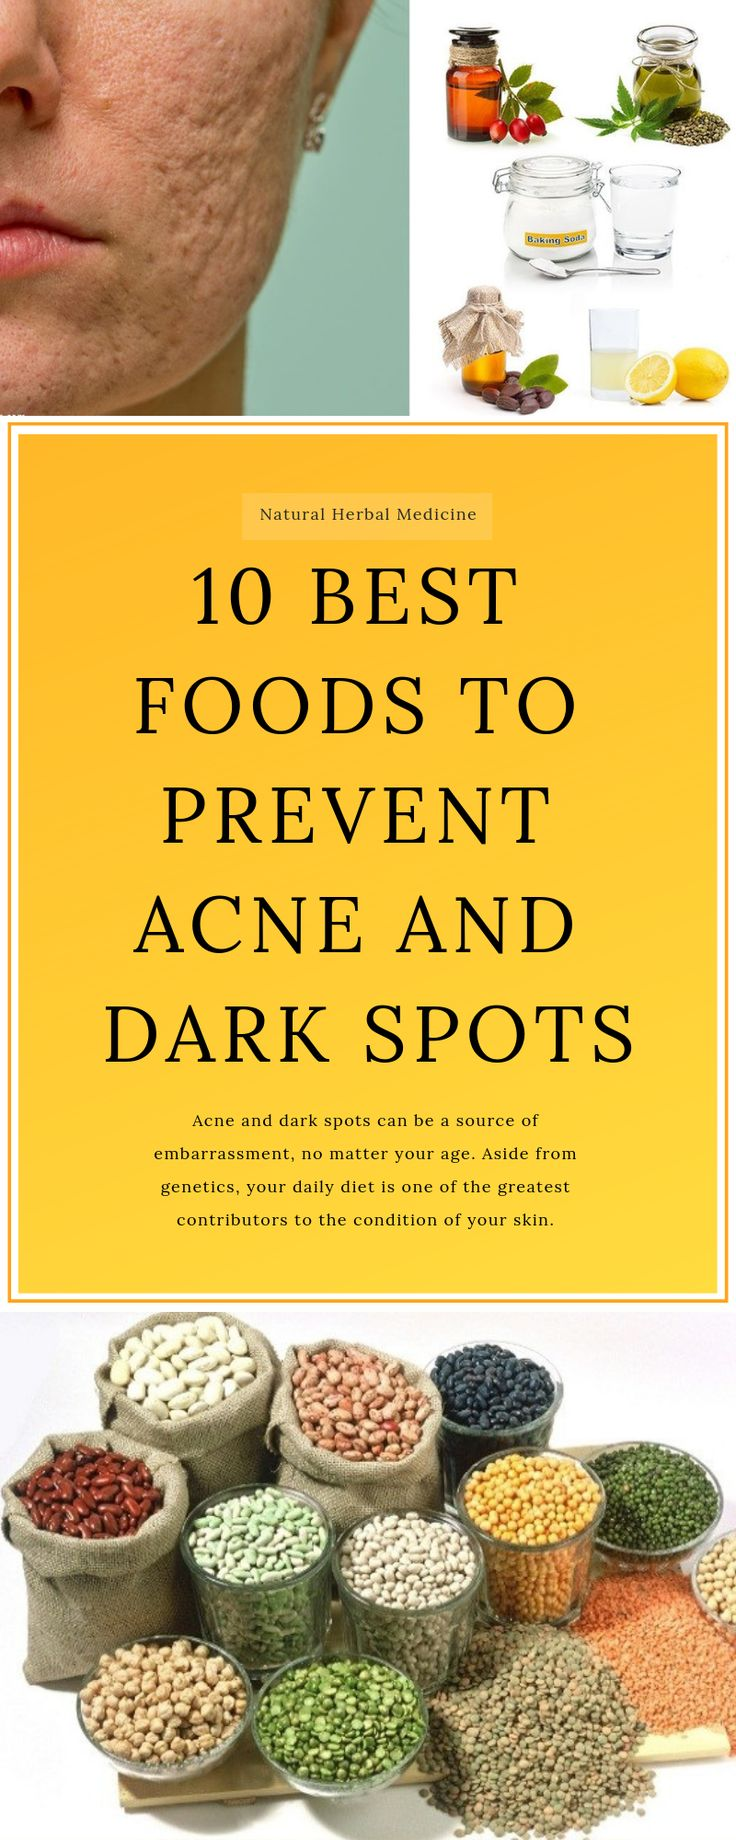 10 Best Foods To Prevent Acne And Dark Spots